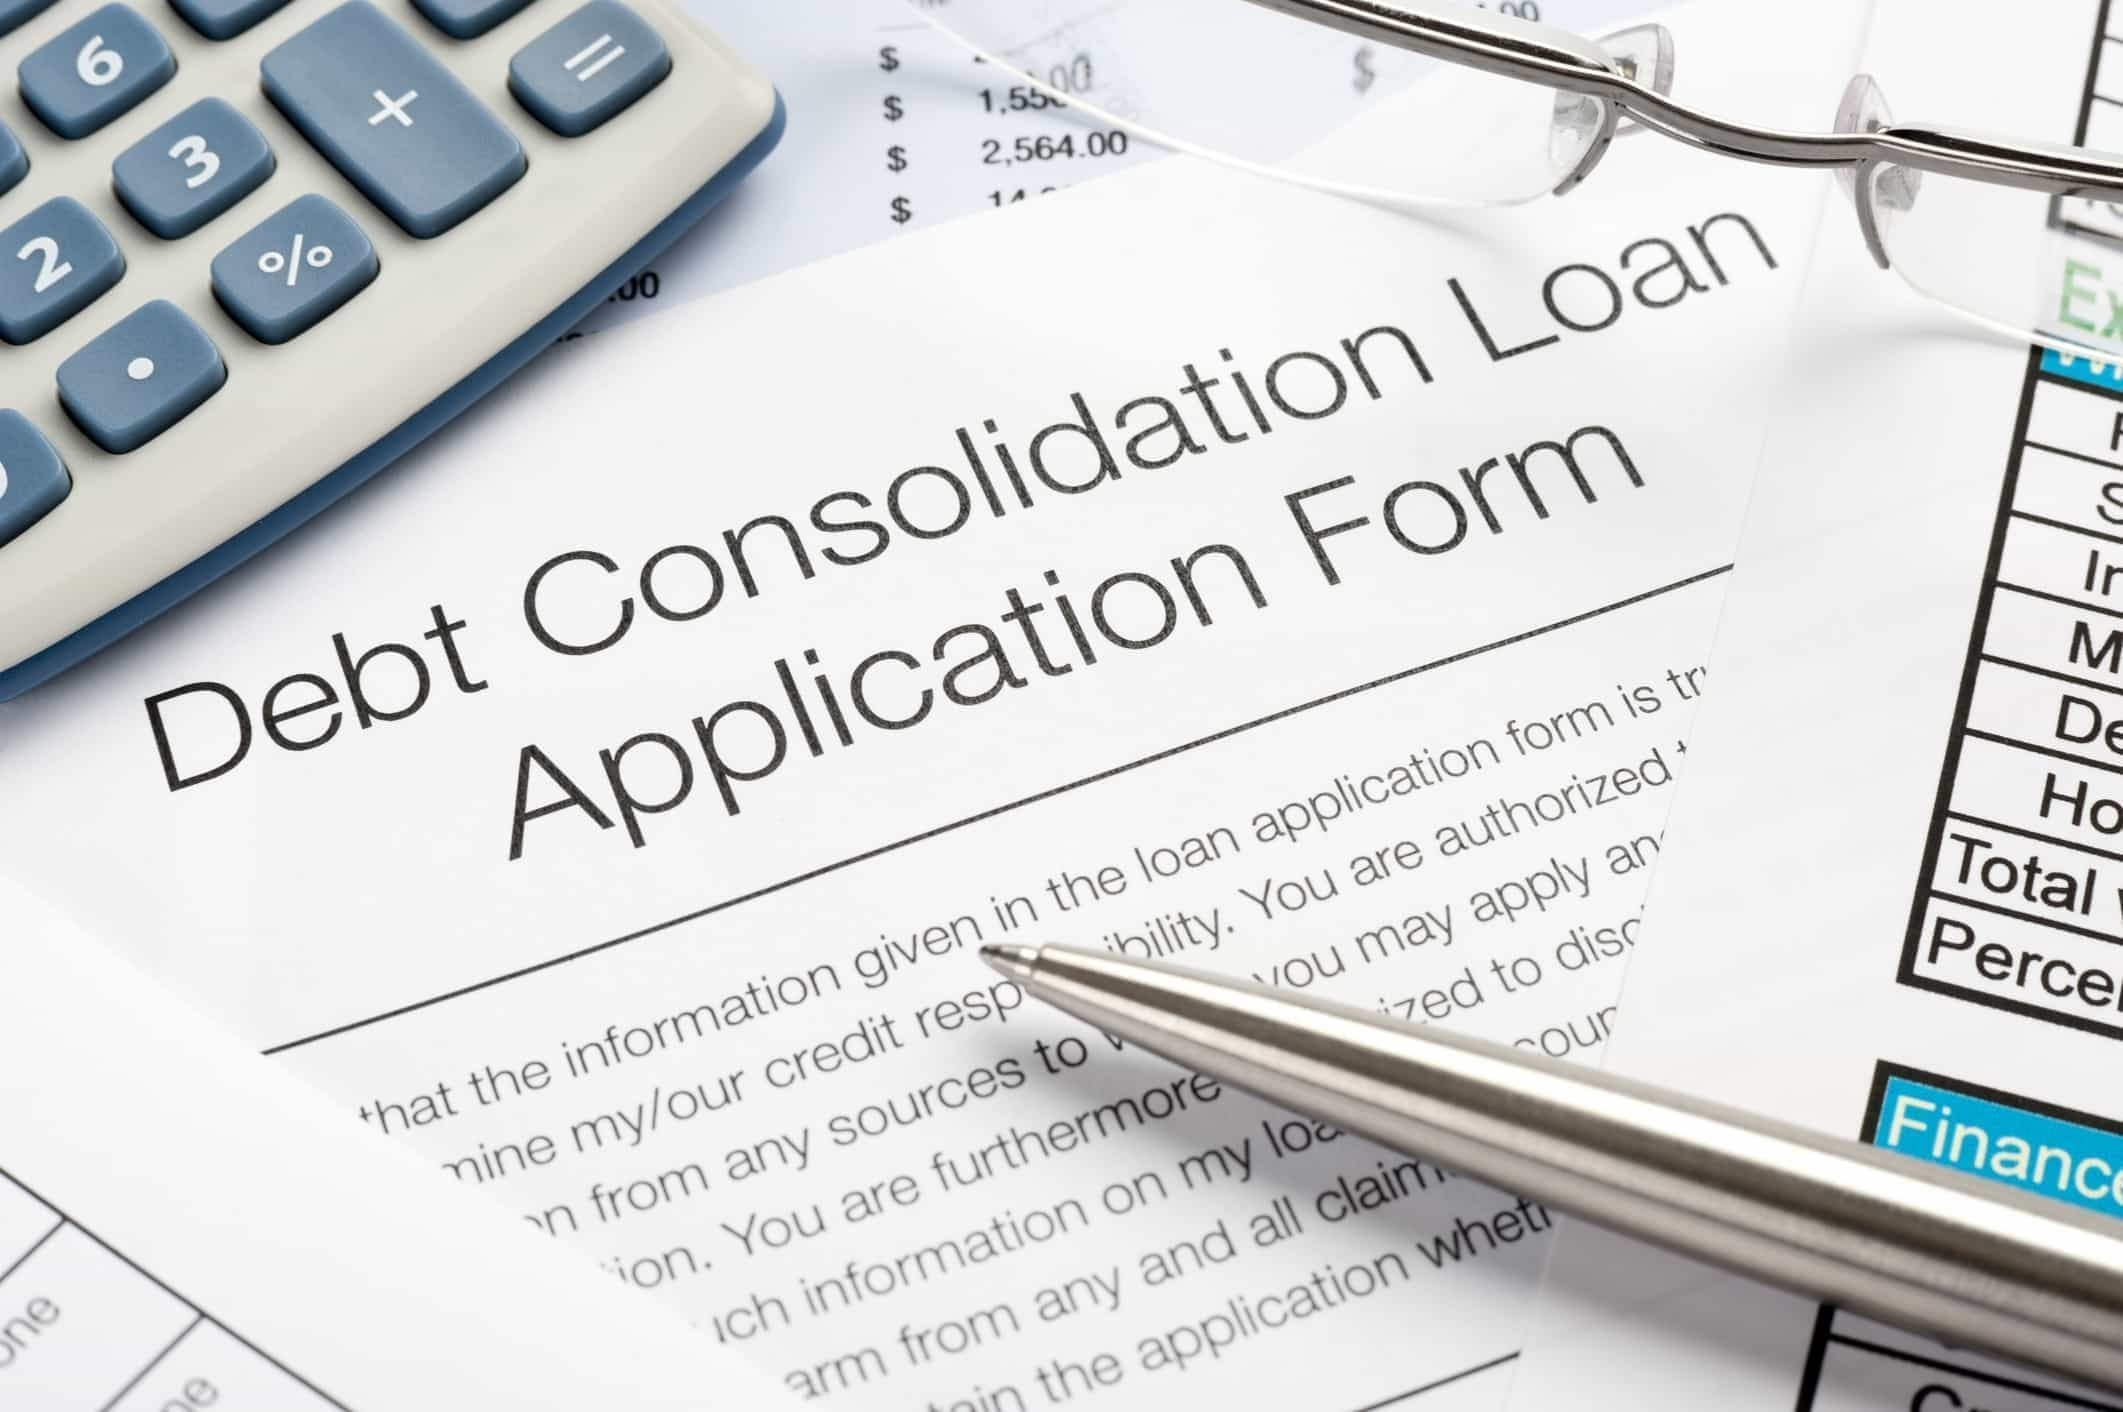 debt consolidation loans for student debt, credit cards - debt